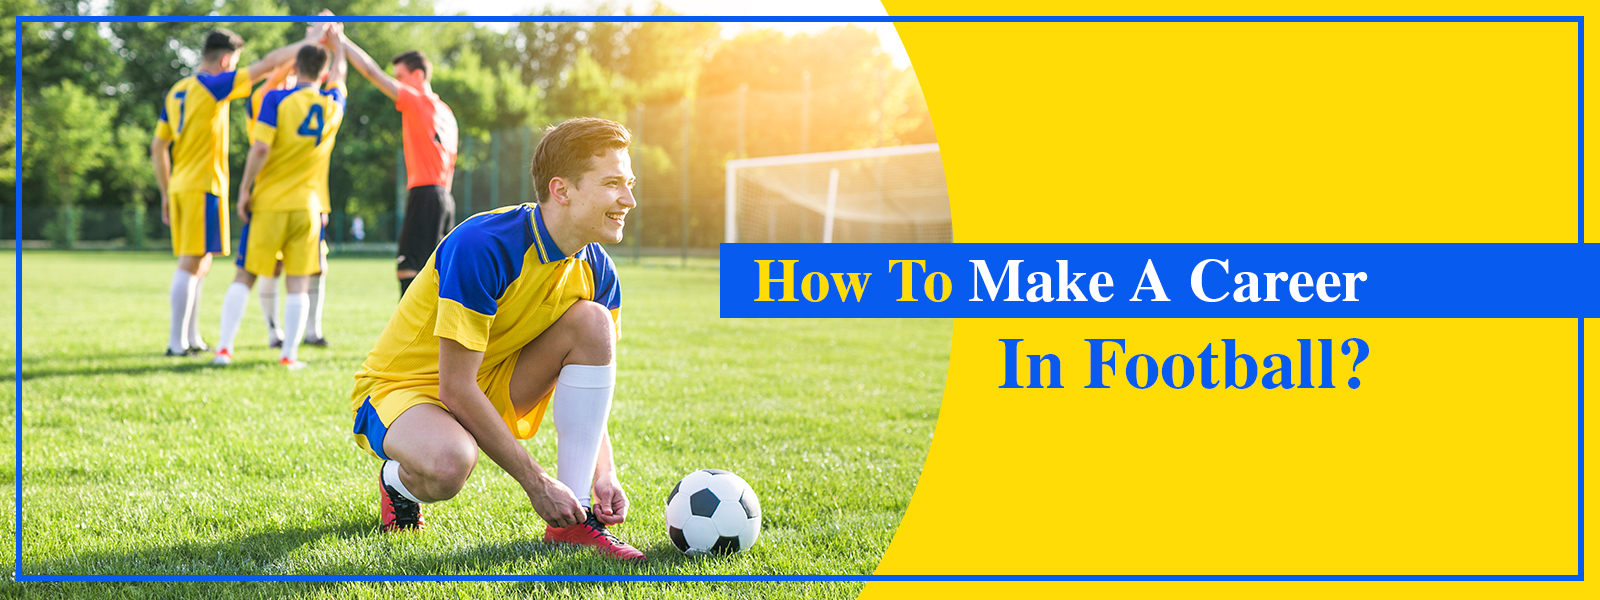 How To Make A Career In Football?